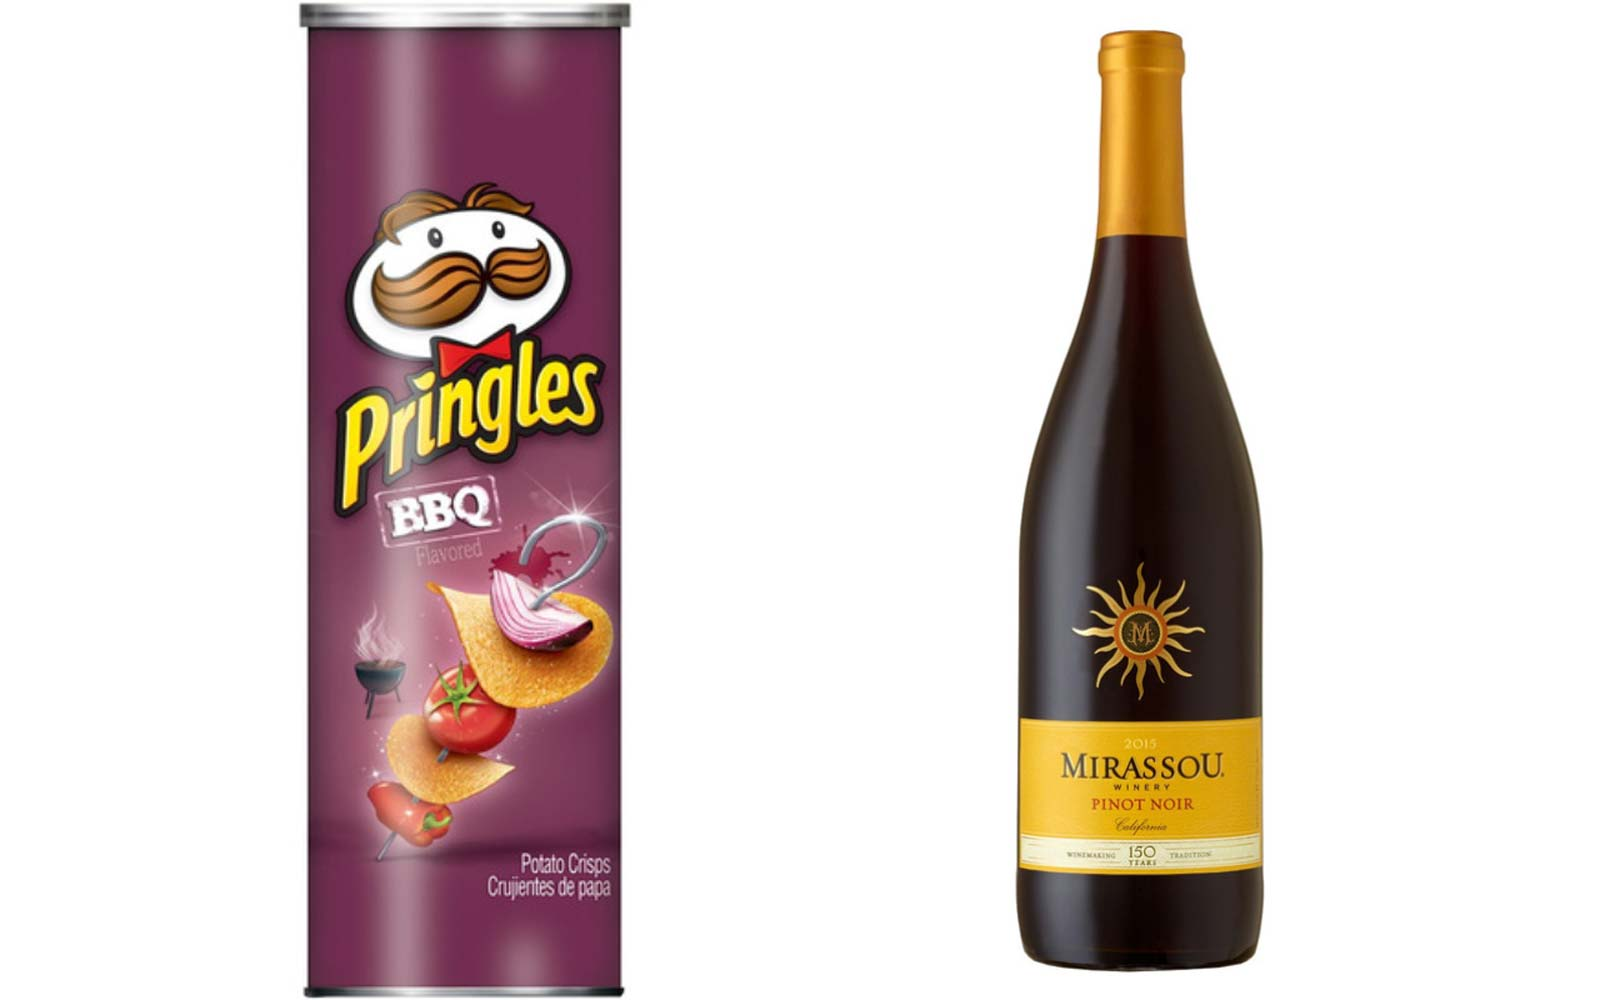 BBQ Pringles with Pinot Noir